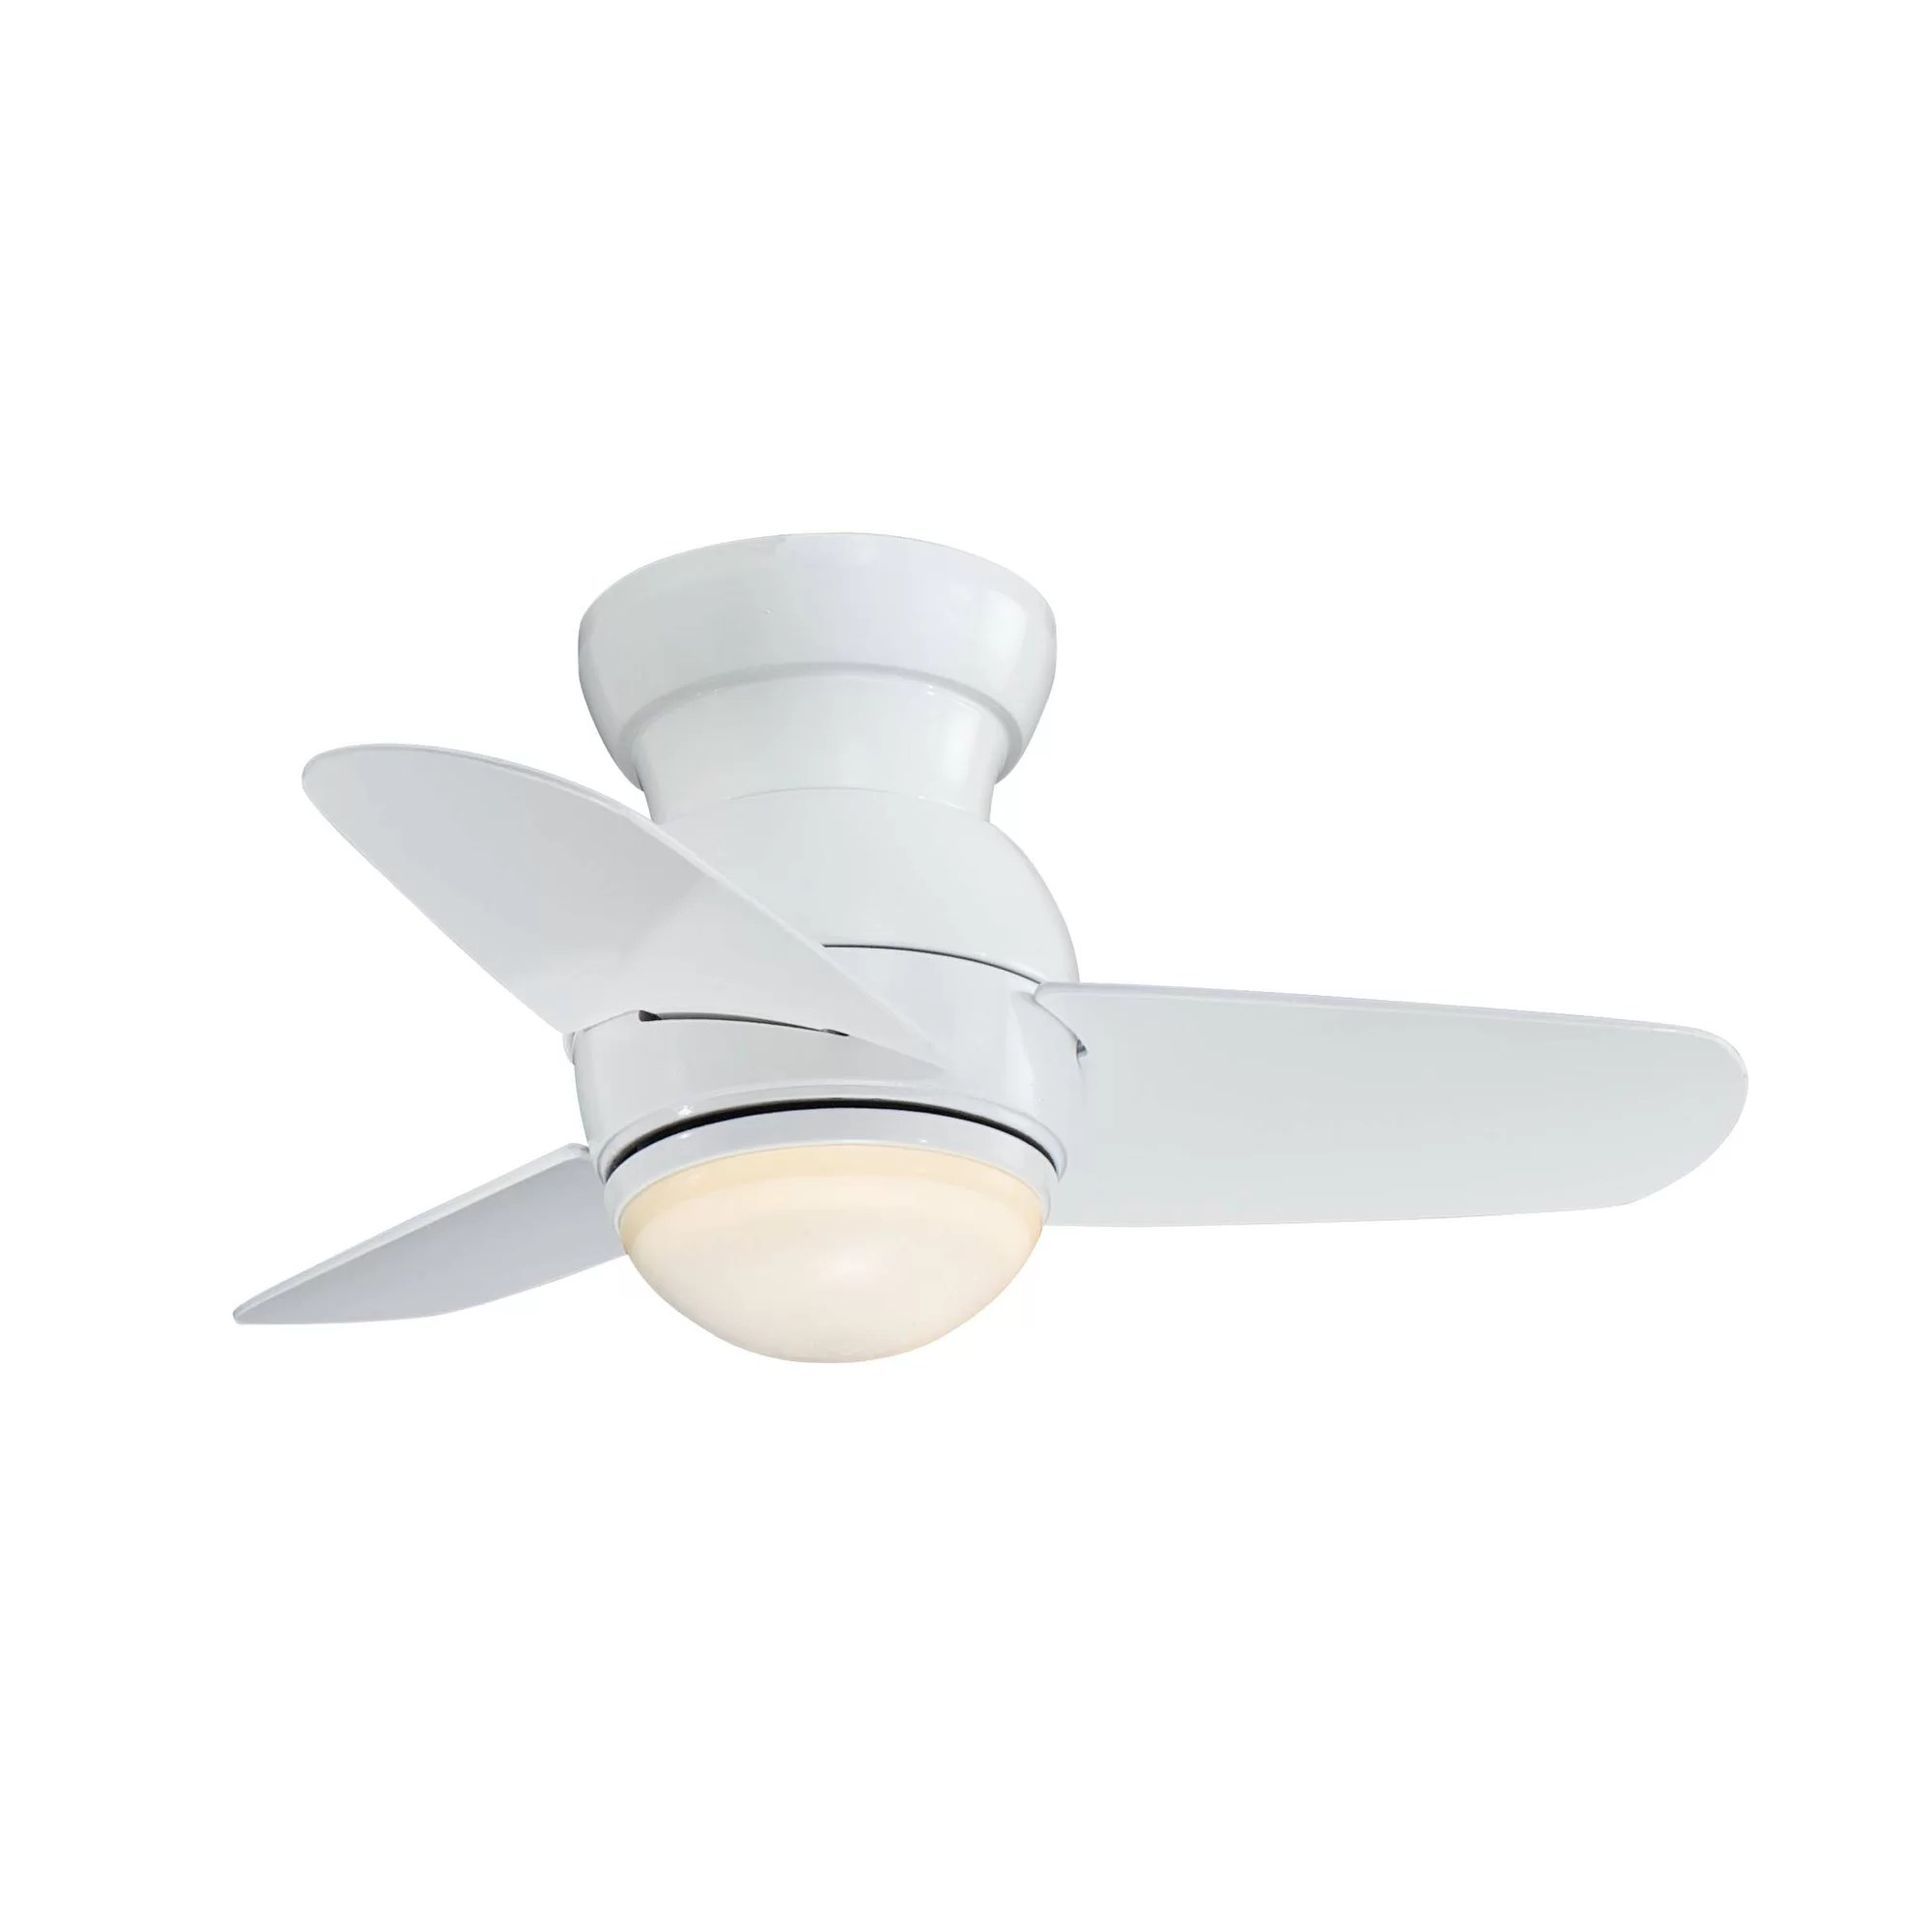 "Wayfair Orb Lighting Minka Aire 26"" Spacesaver Flush Mount 3-blade Ceiling Fan"